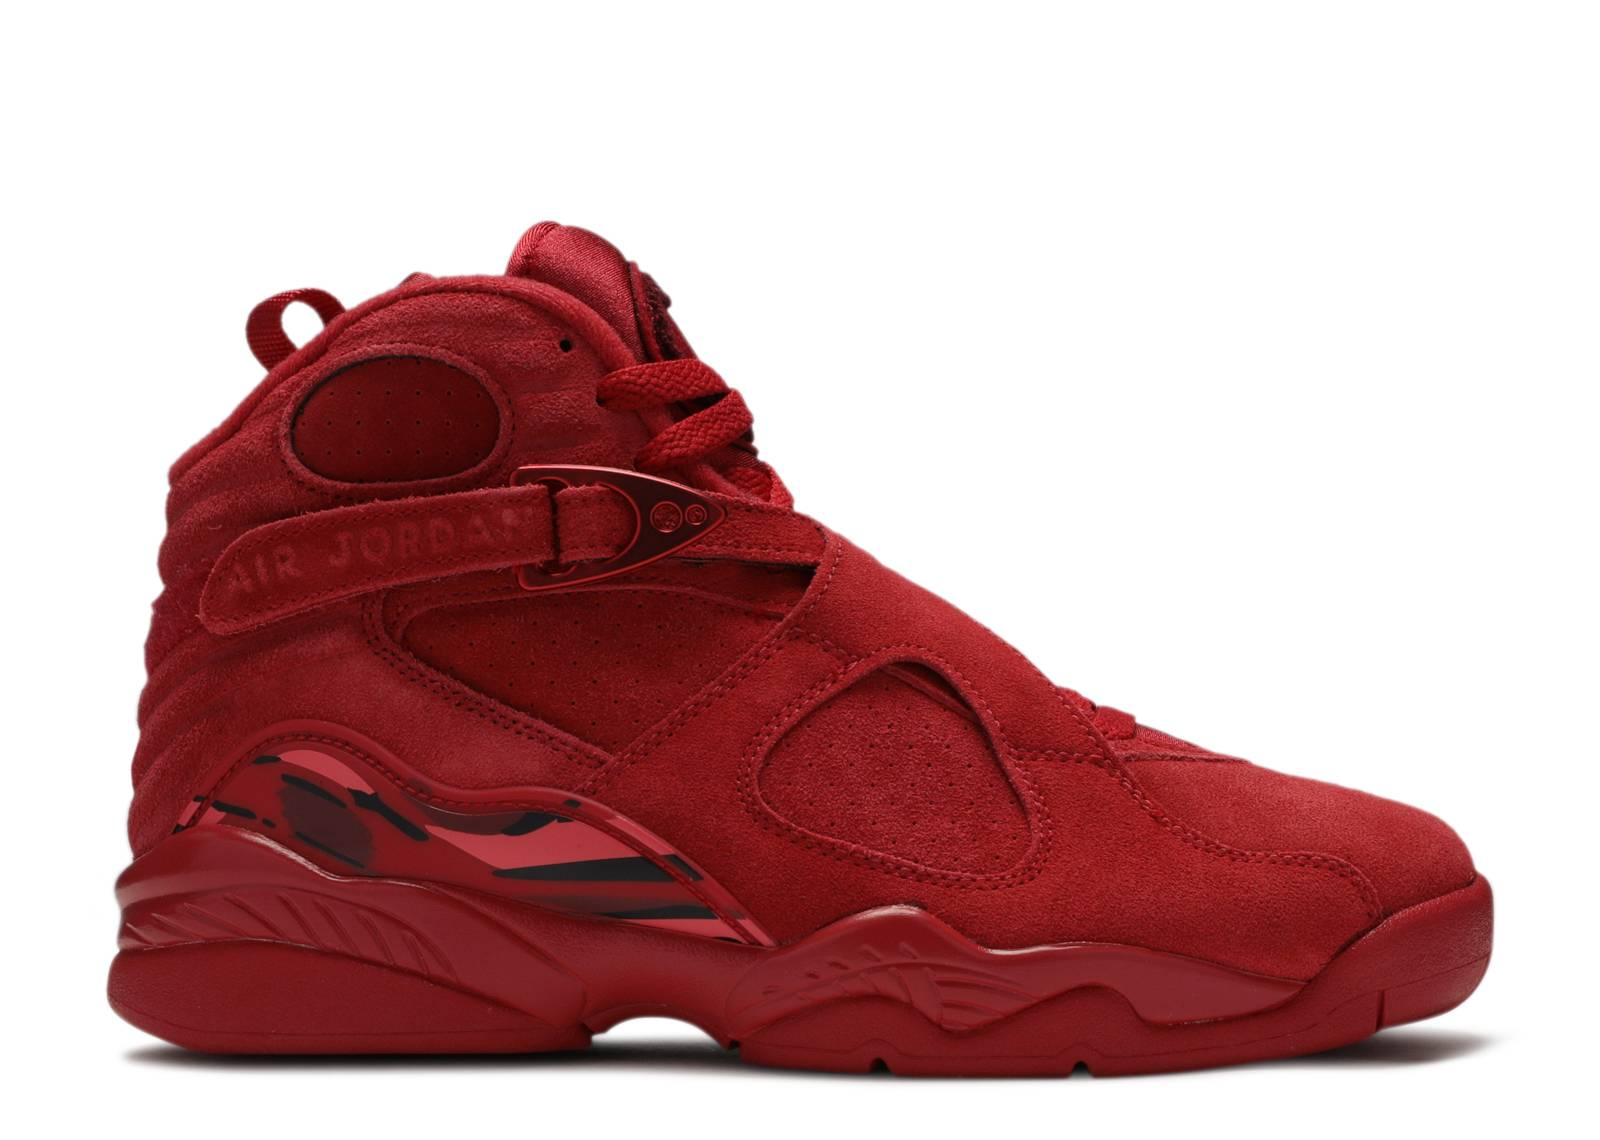 buy online 38e1f fdf0d Air Jordan 8 (VIII) Shoes - Nike   Flight Club